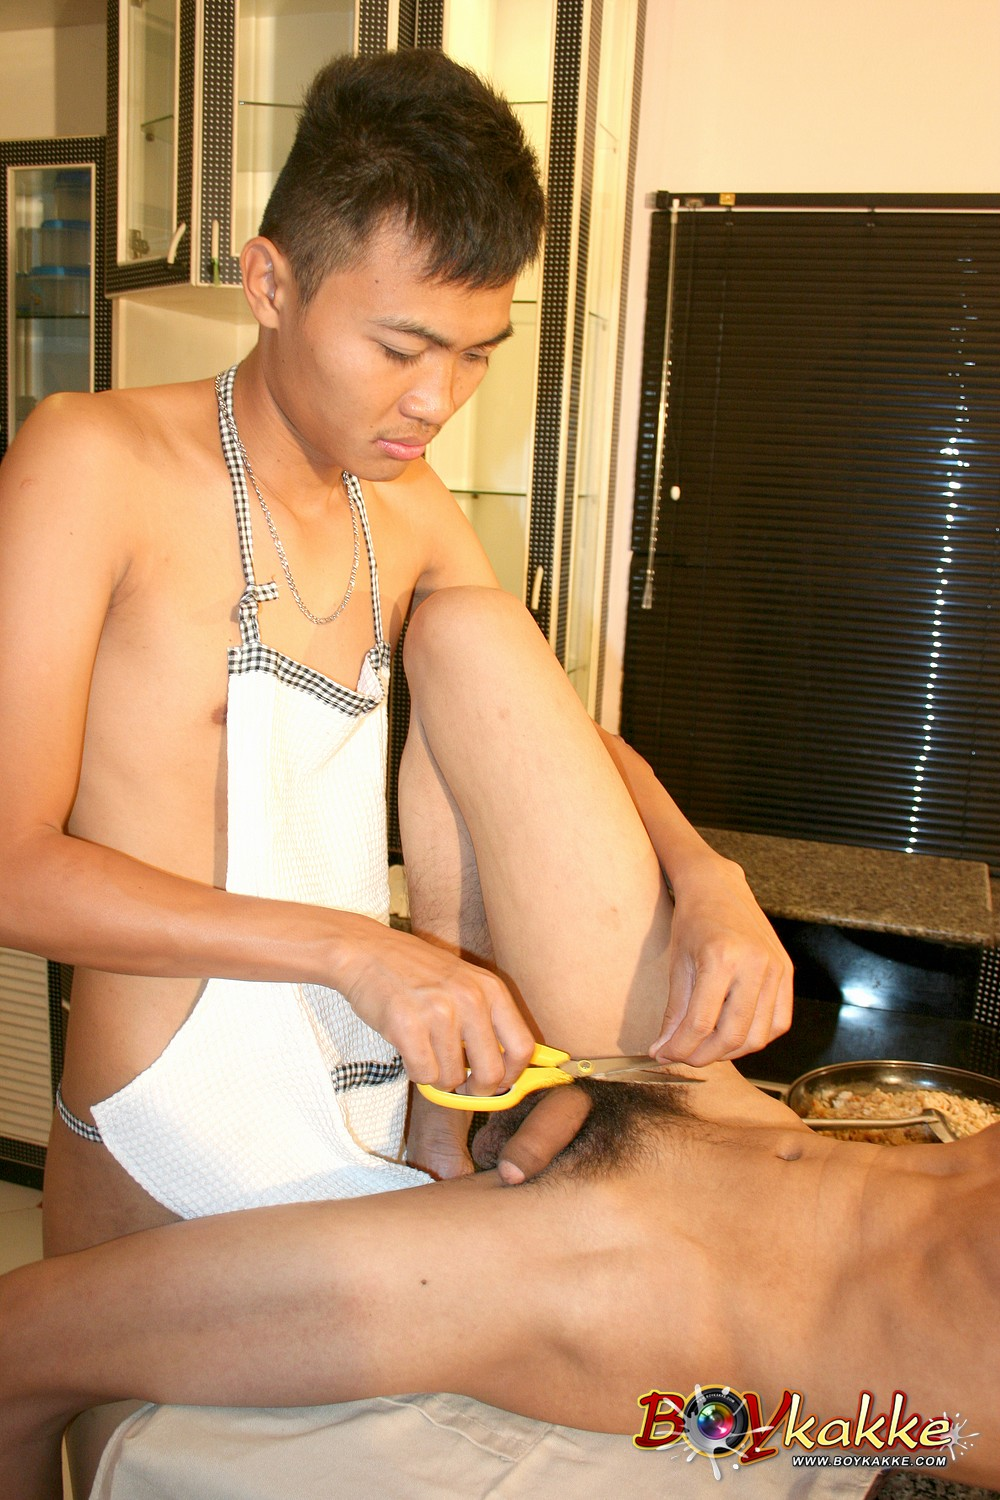 Boykakke-Asians-Fucking-Bareback-in-Kitchen-torrent09 Asian Guys Fucking Bareback in the Kitchen and Make a Cum Facial